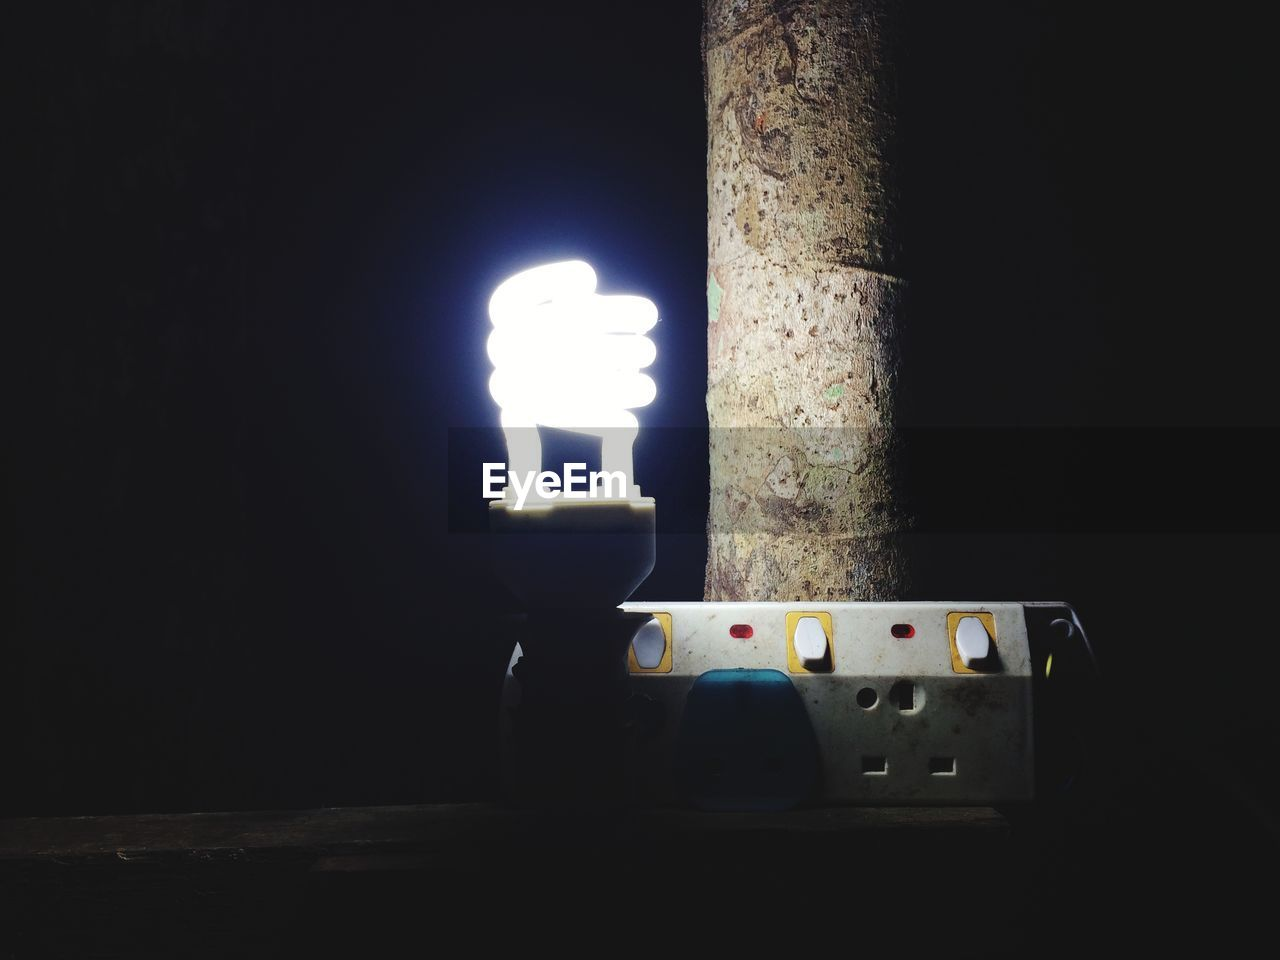 illuminated, no people, electricity, night, glowing, technology, lighting equipment, close-up, indoors, dark, light bulb, light - natural phenomenon, copy space, still life, fuel and power generation, domestic room, wall - building feature, nature, energy efficient, light, black background, power supply, push button, electrical equipment, brightly lit